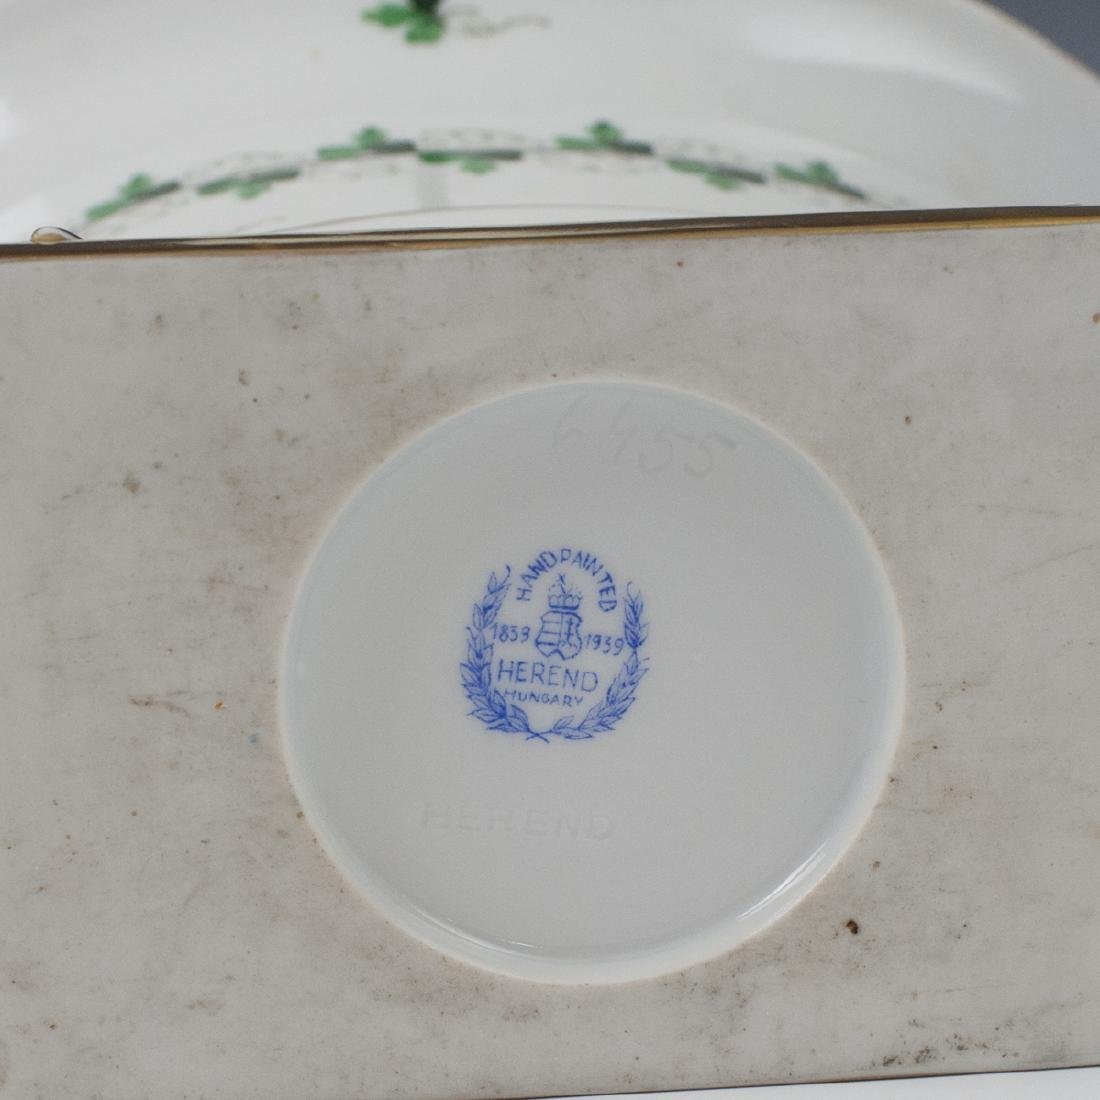 """Herend Centennial """"Persil"""" Porcelain Footed Planter - 3"""